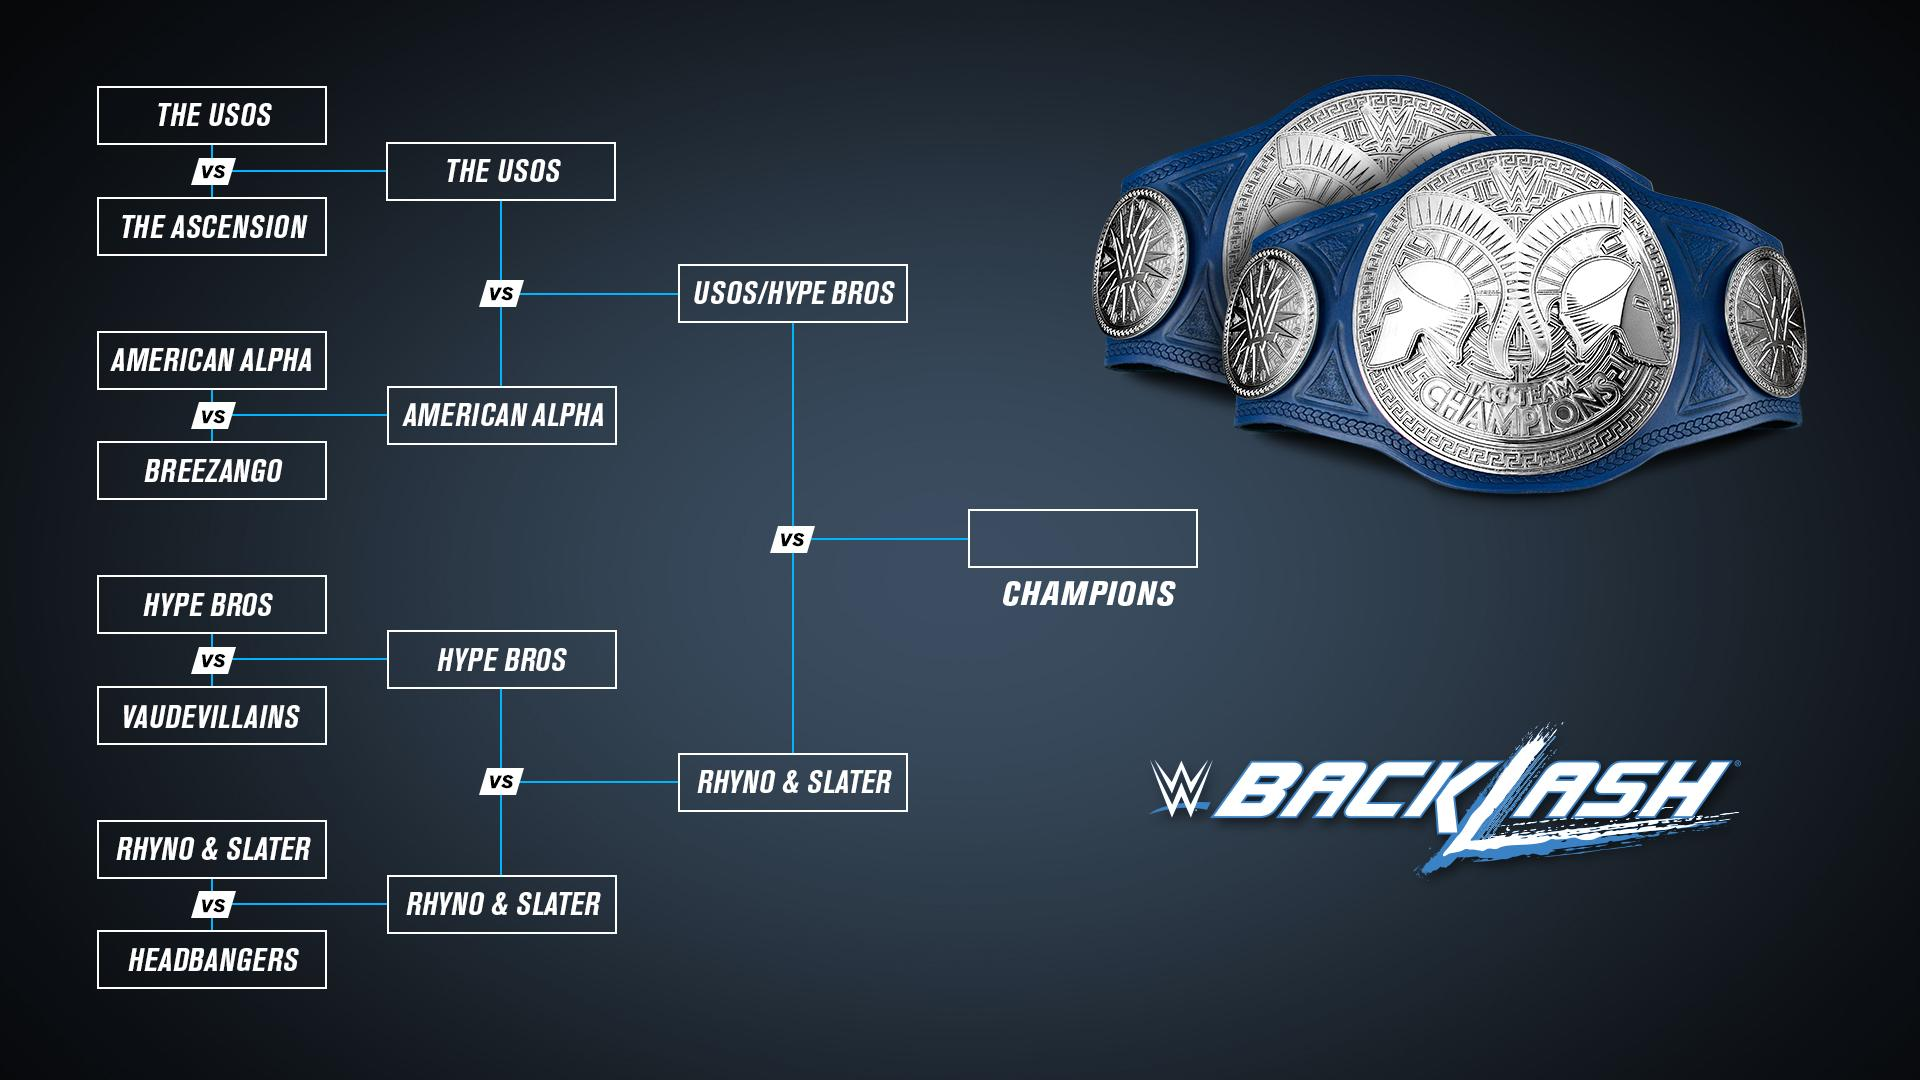 20160906_backlash_sdtagtitlebracket_belts_v2-90de513fa68f24515370398302b29bee